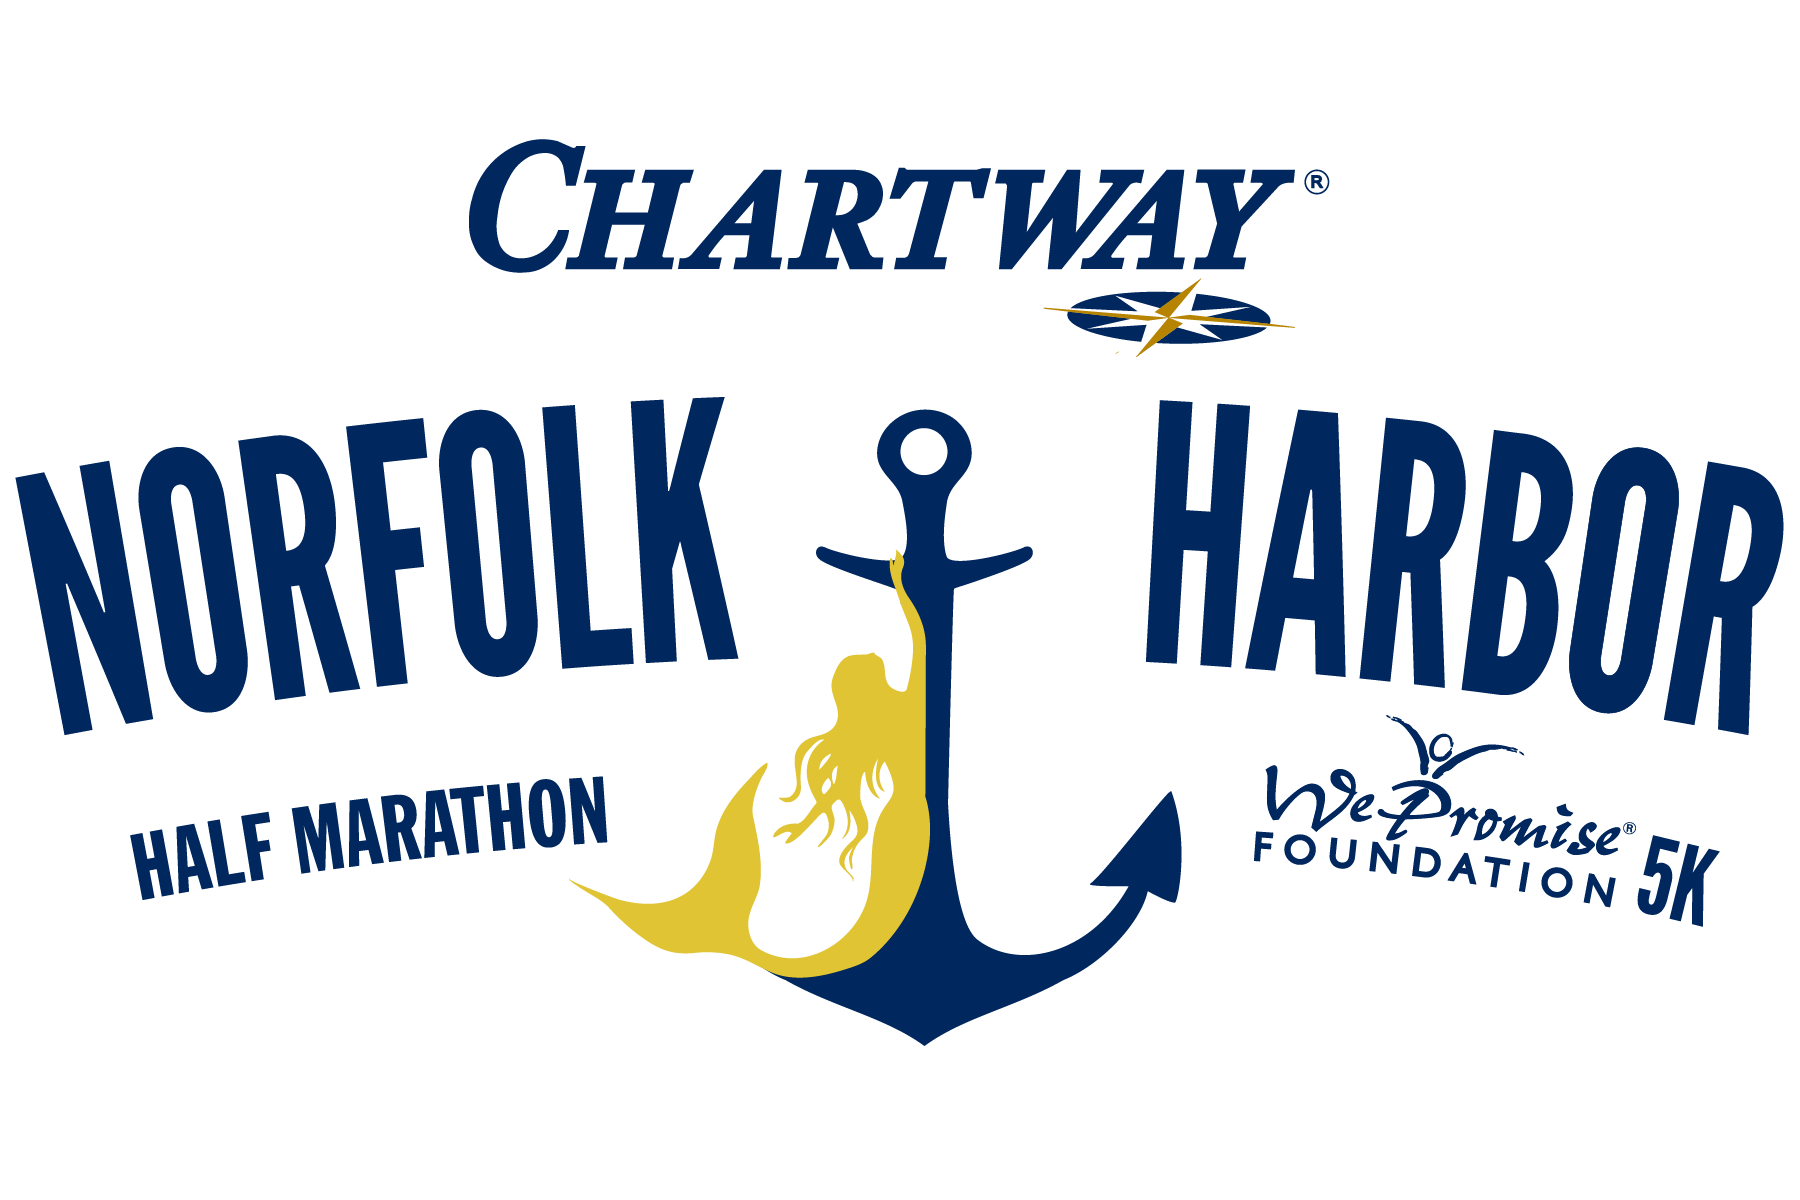 Chartway Norfolk Harbor Half Marathon & We Promise Foundation 5K presented by Bon Secours In Motion Logo